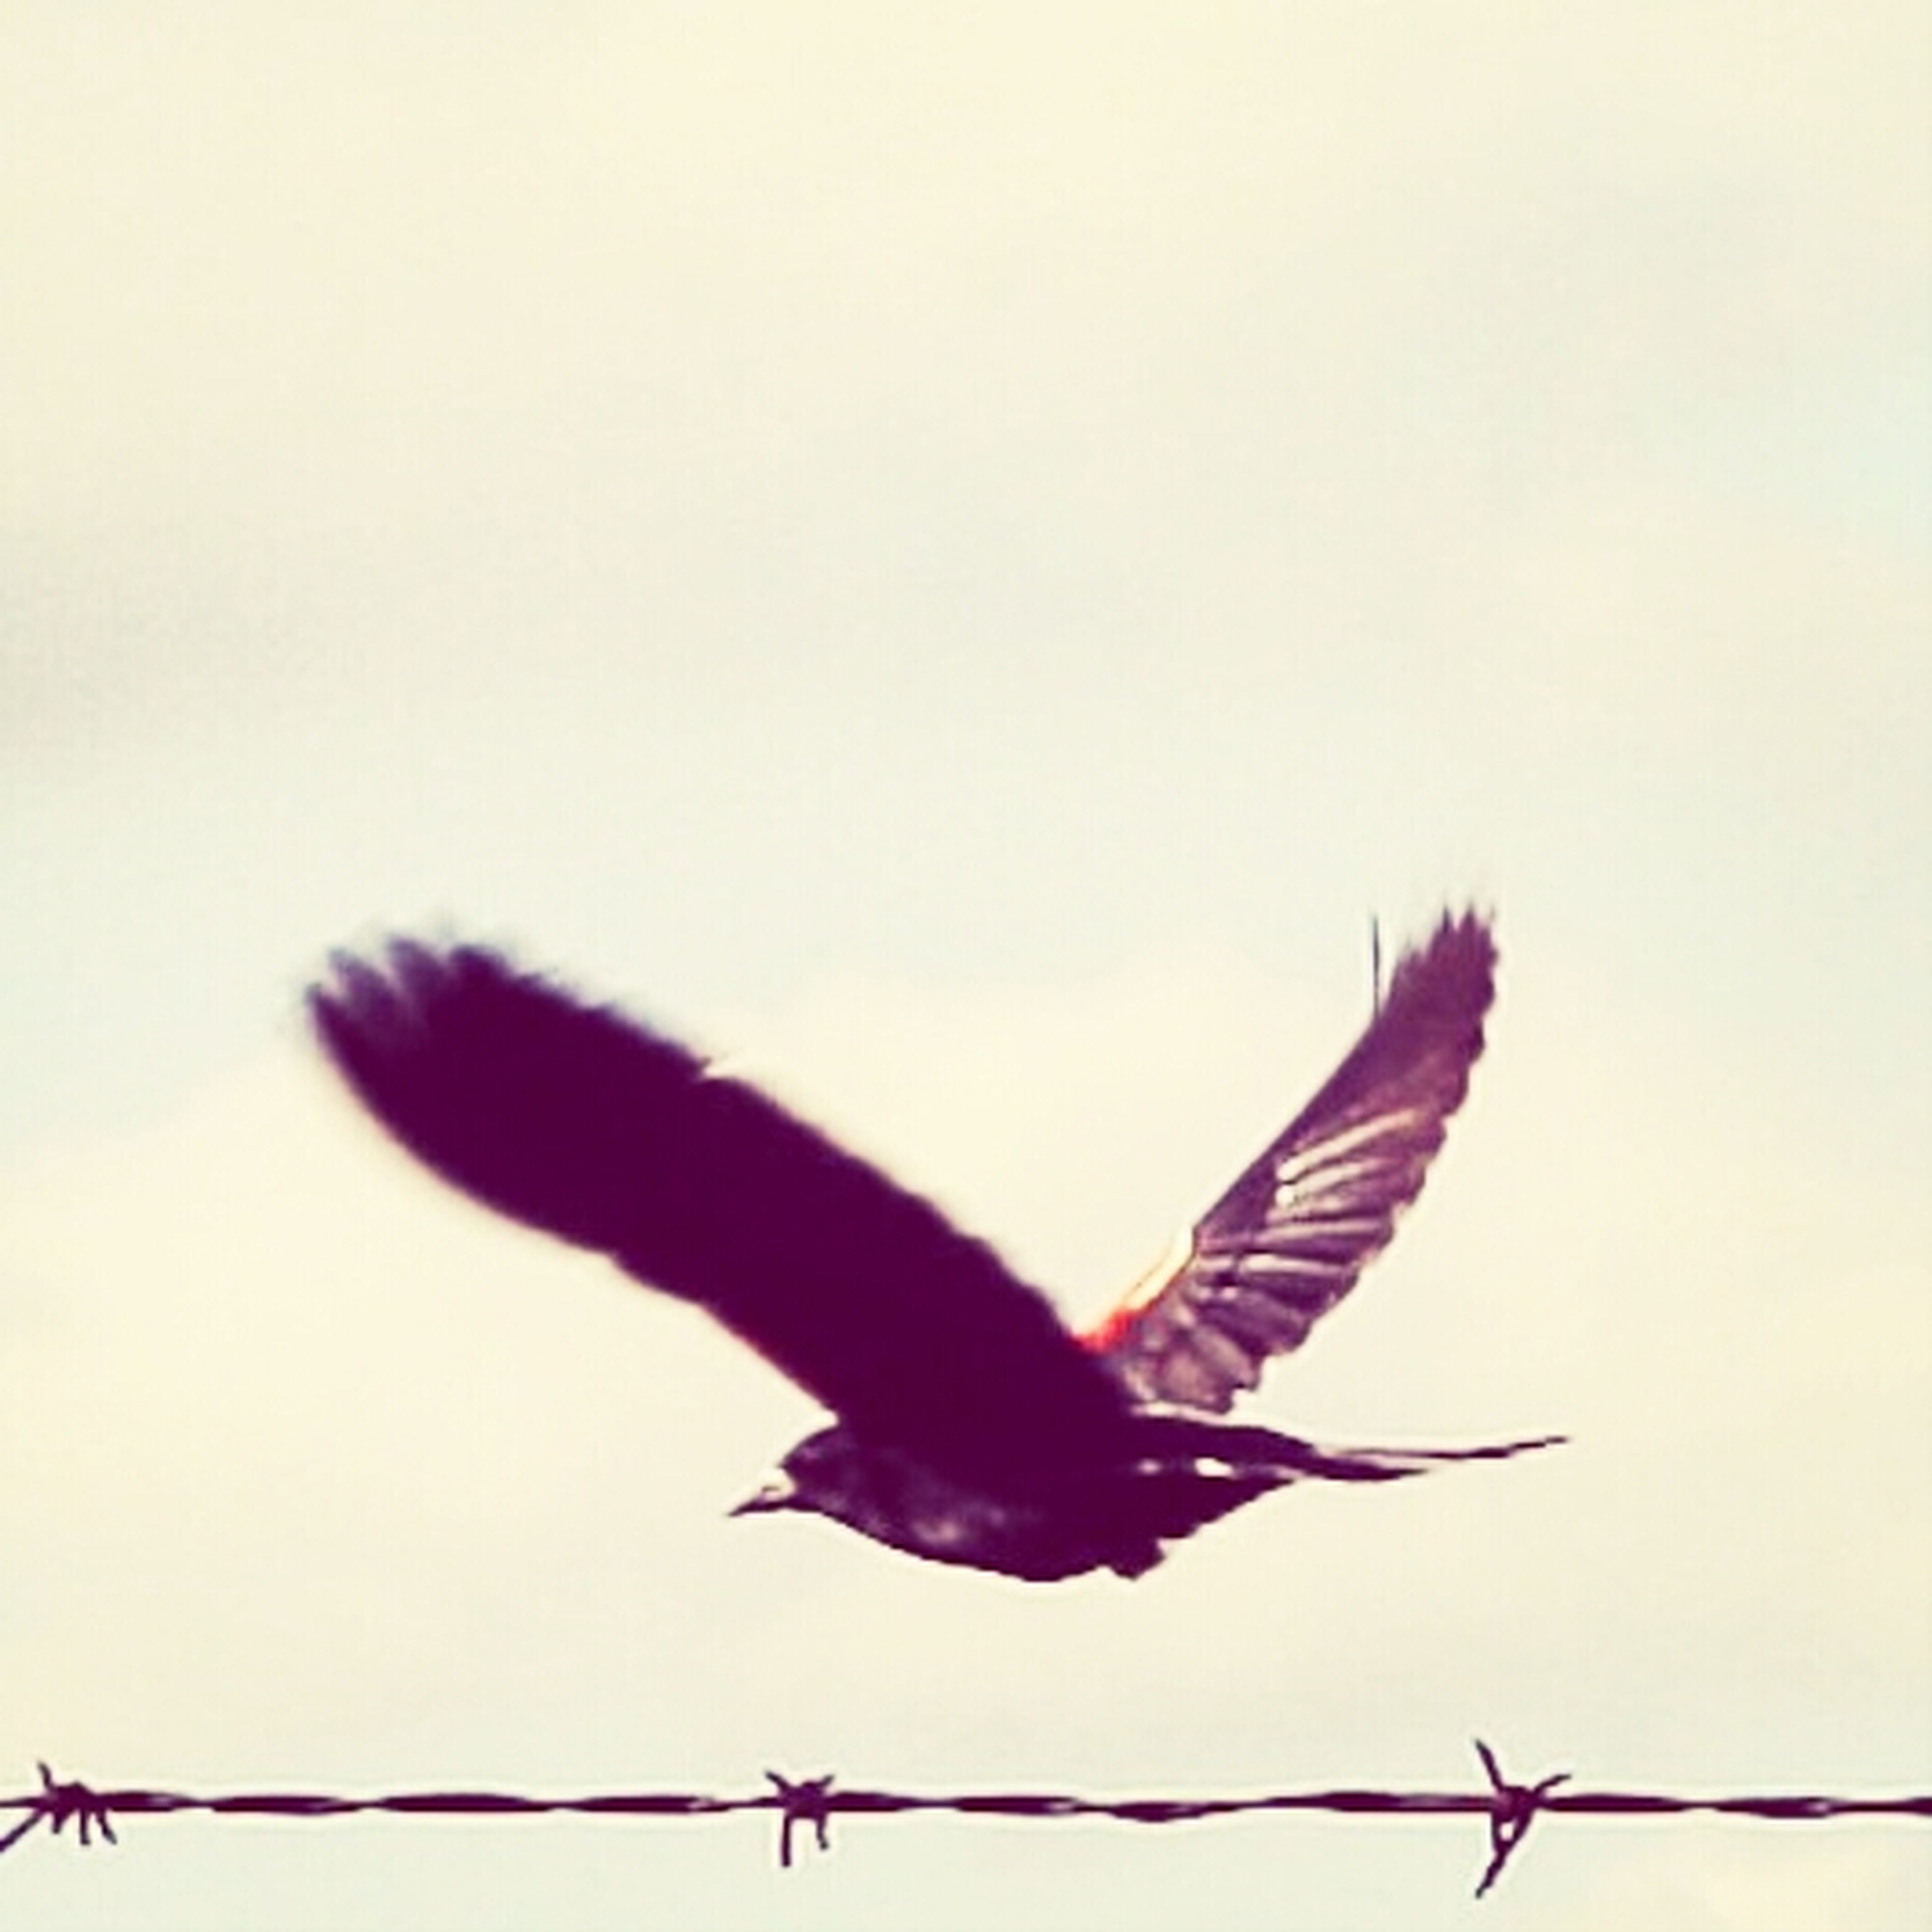 bird, animals in the wild, animal themes, flying, wildlife, low angle view, spread wings, clear sky, perching, mid-air, one animal, full length, copy space, sky, nature, outdoors, day, silhouette, two animals, no people